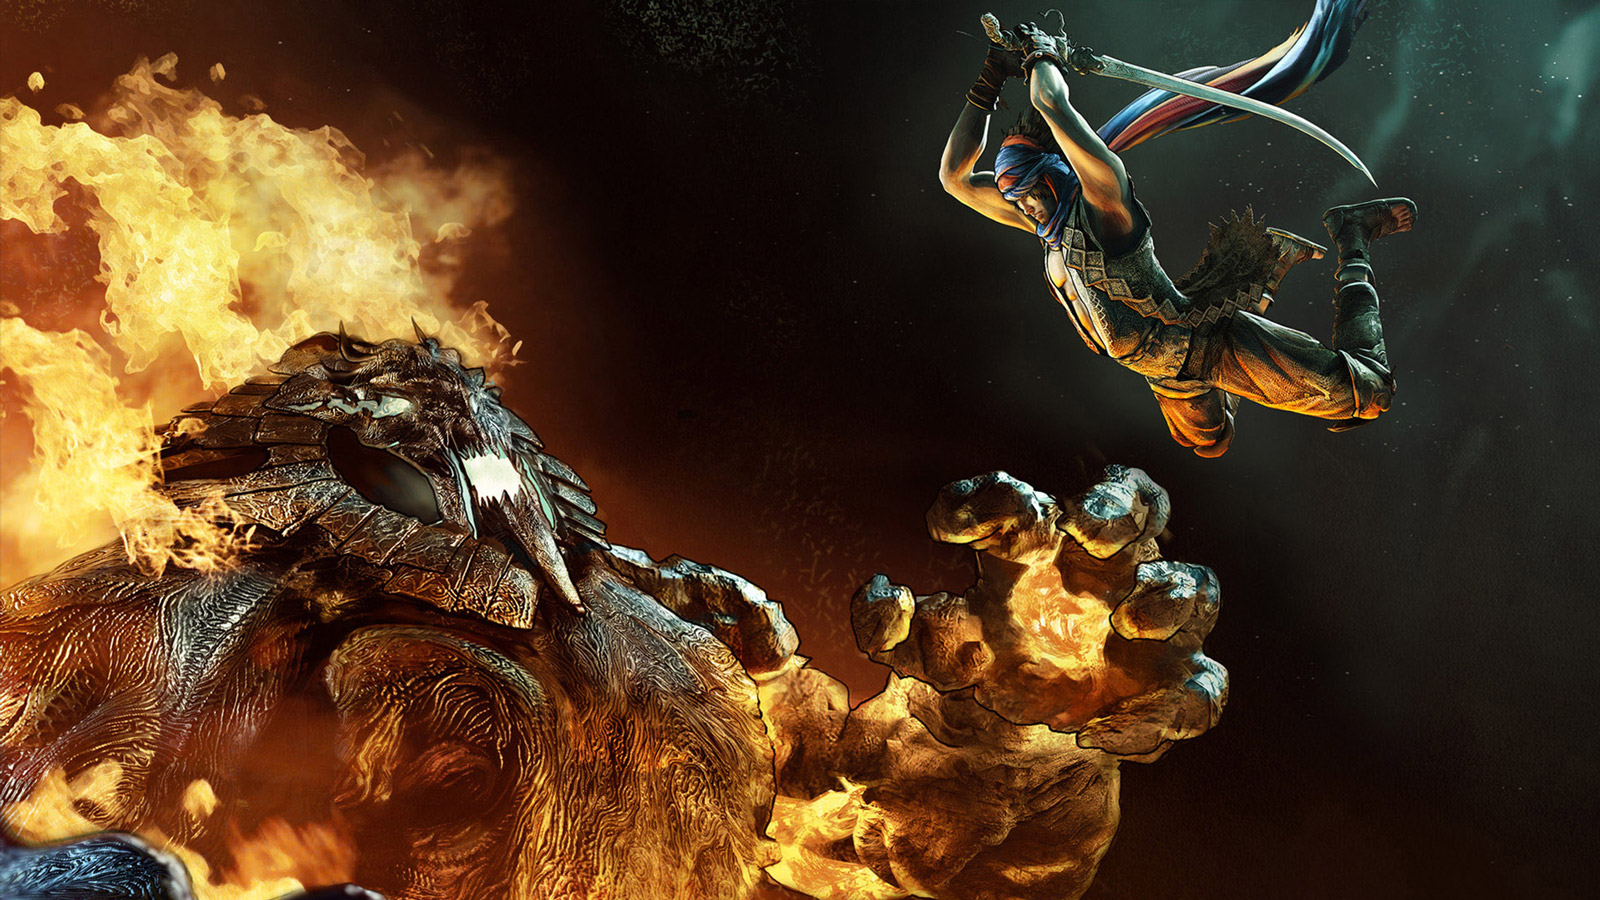 Free Prince of Persia Wallpaper in 1600x900